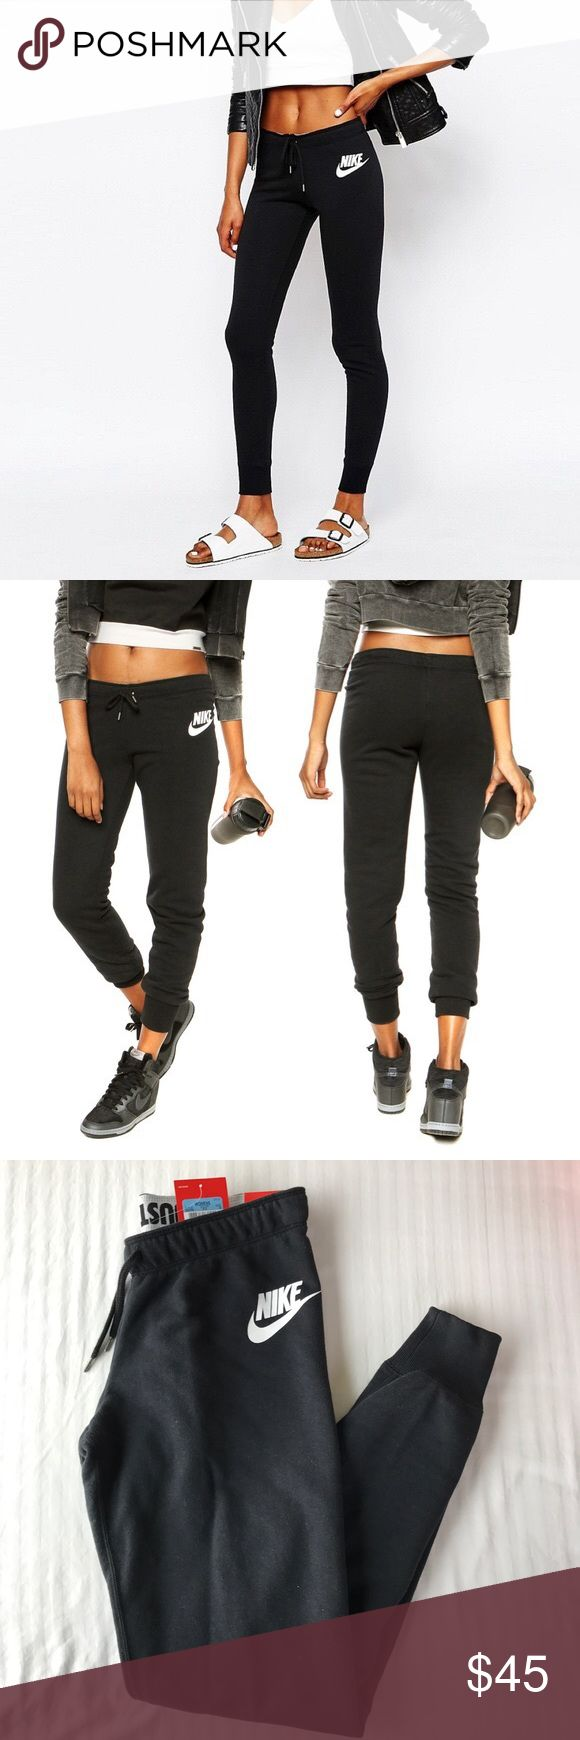 Nike Tight Jogger Sweats •The Nike Rally Tight Women's Pants hug your body from hip to hem for a supportive fit and freedom to move. Brushed French terry fabric offers a soft, worn-in feel.   •Size Medium. True to size, tight fit.   •New with tag.   •NO TRADES/PAYPAL/MERC/HOLDS/NONSENSE. Nike Pants Track Pants & Joggers